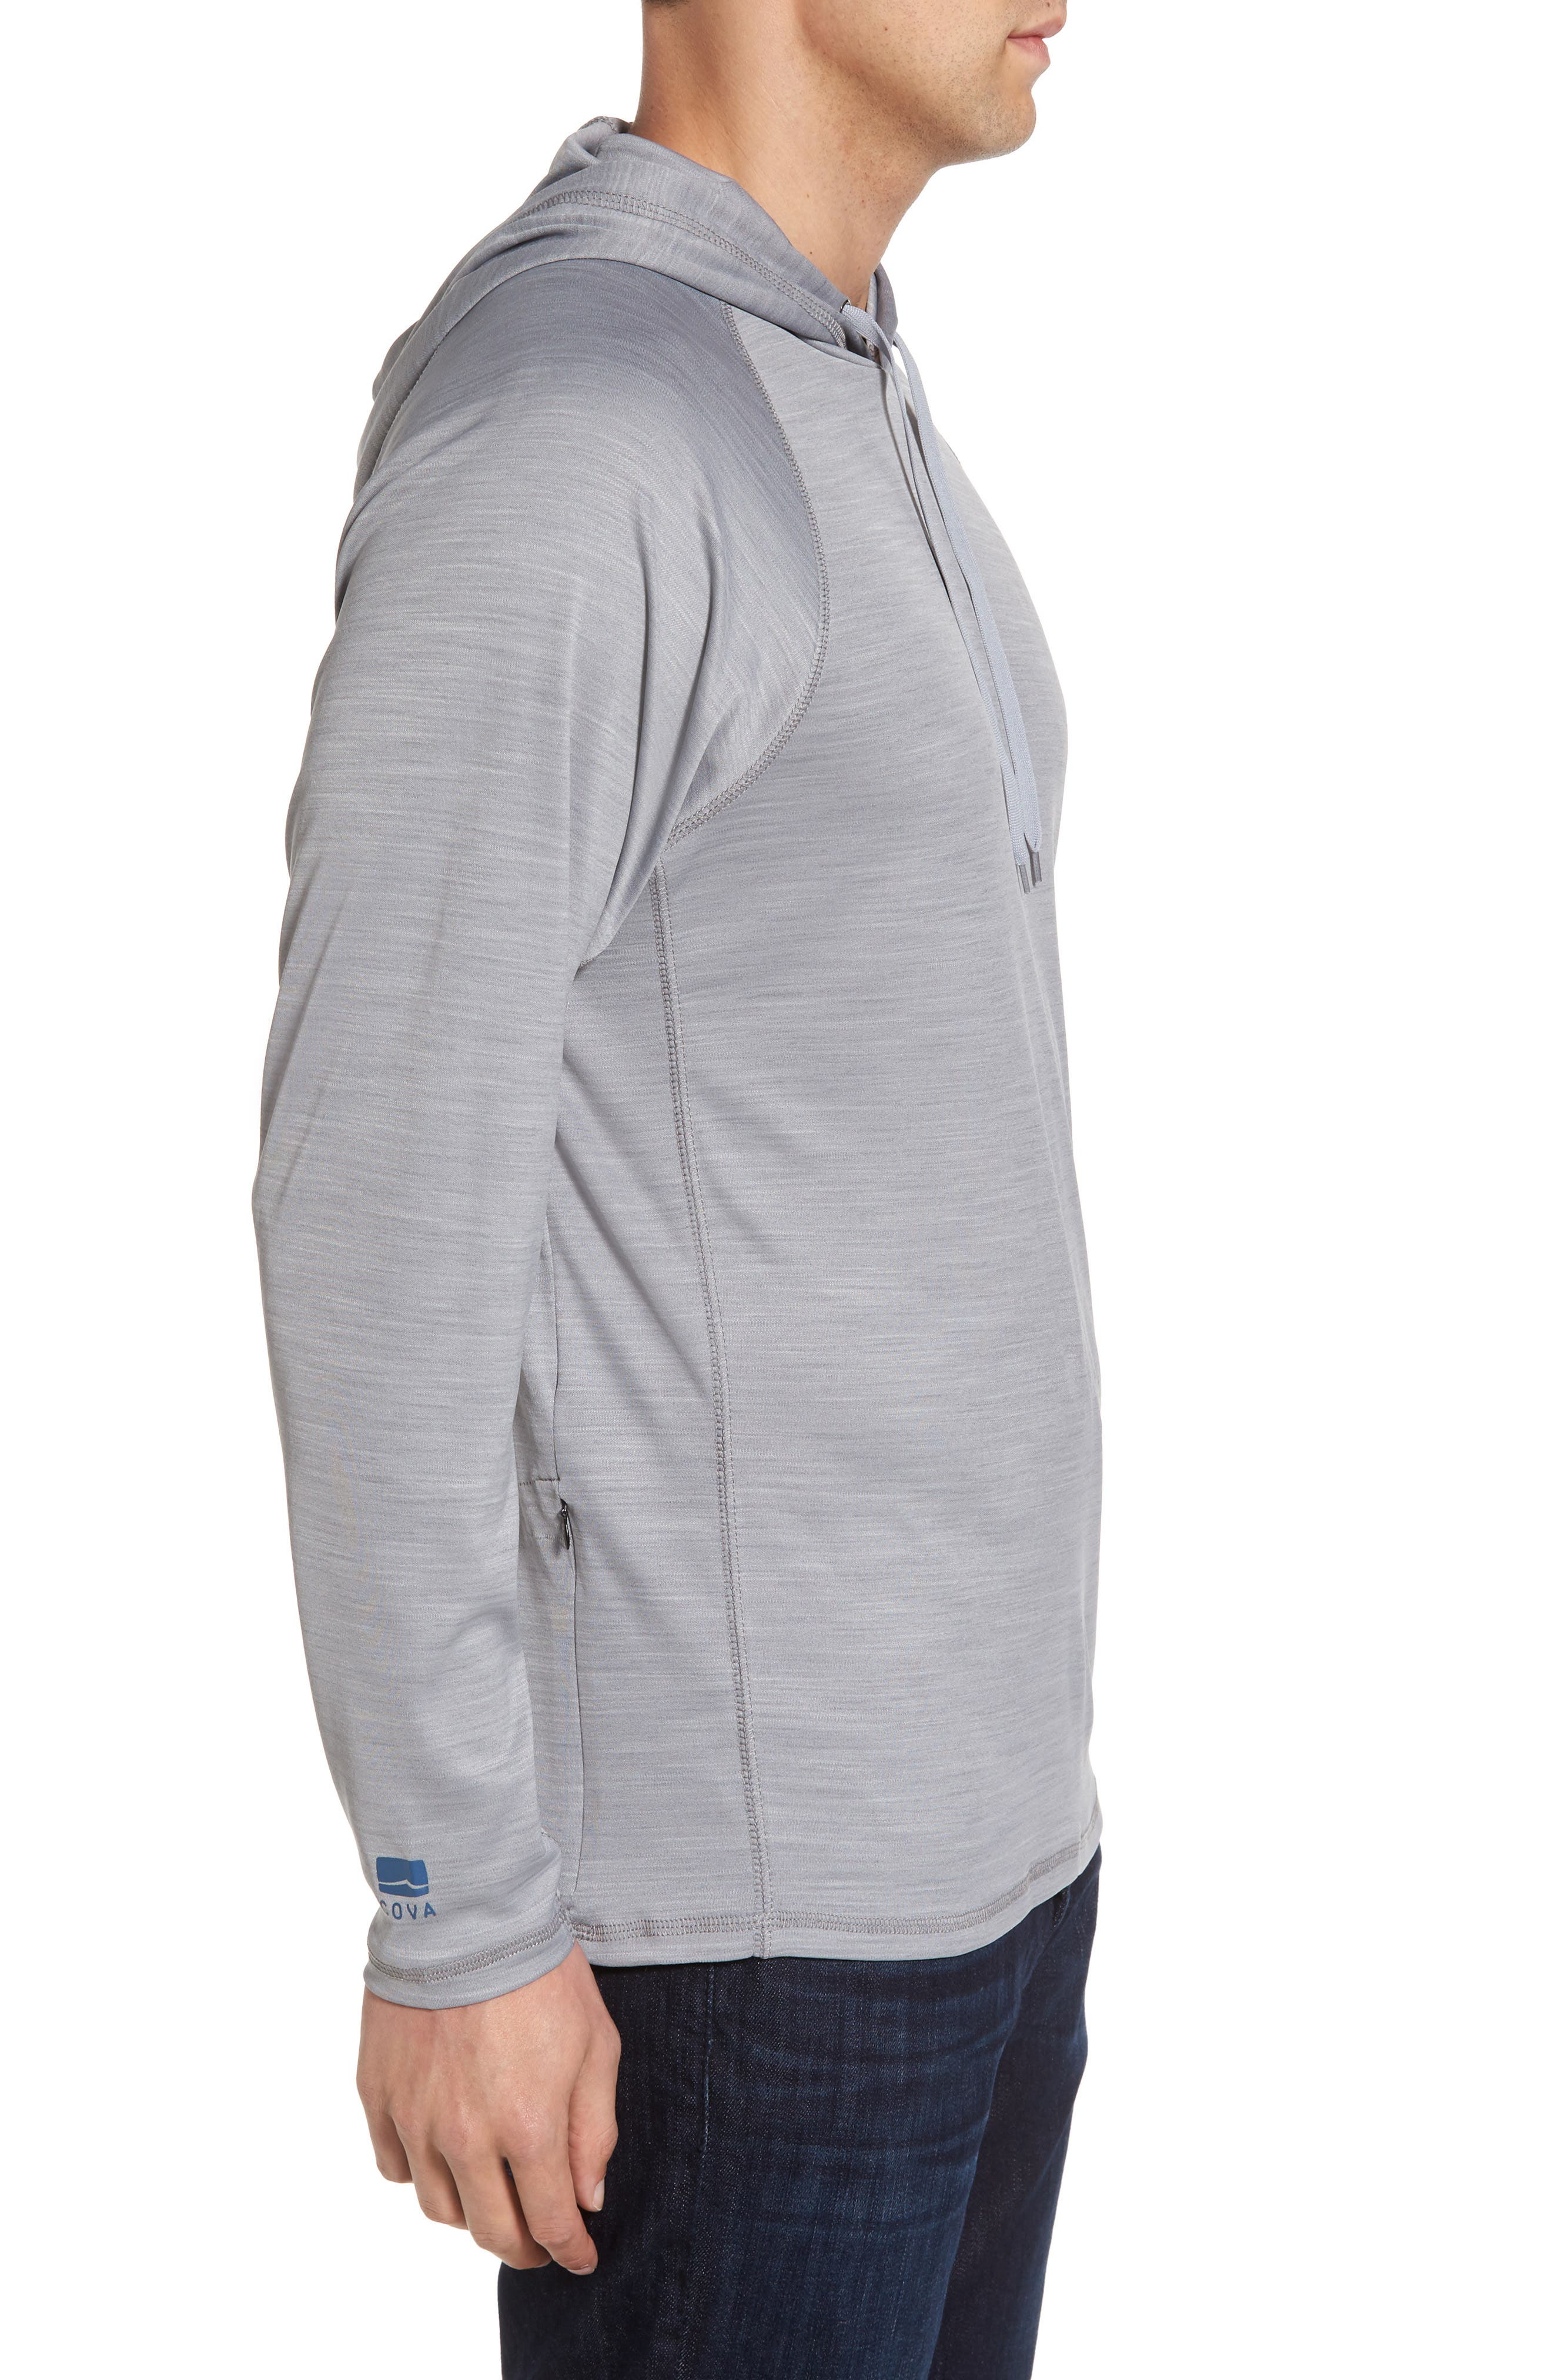 Alternate Image 3  - Cova Undercover Hooded Long Sleeve Performance T-Shirt